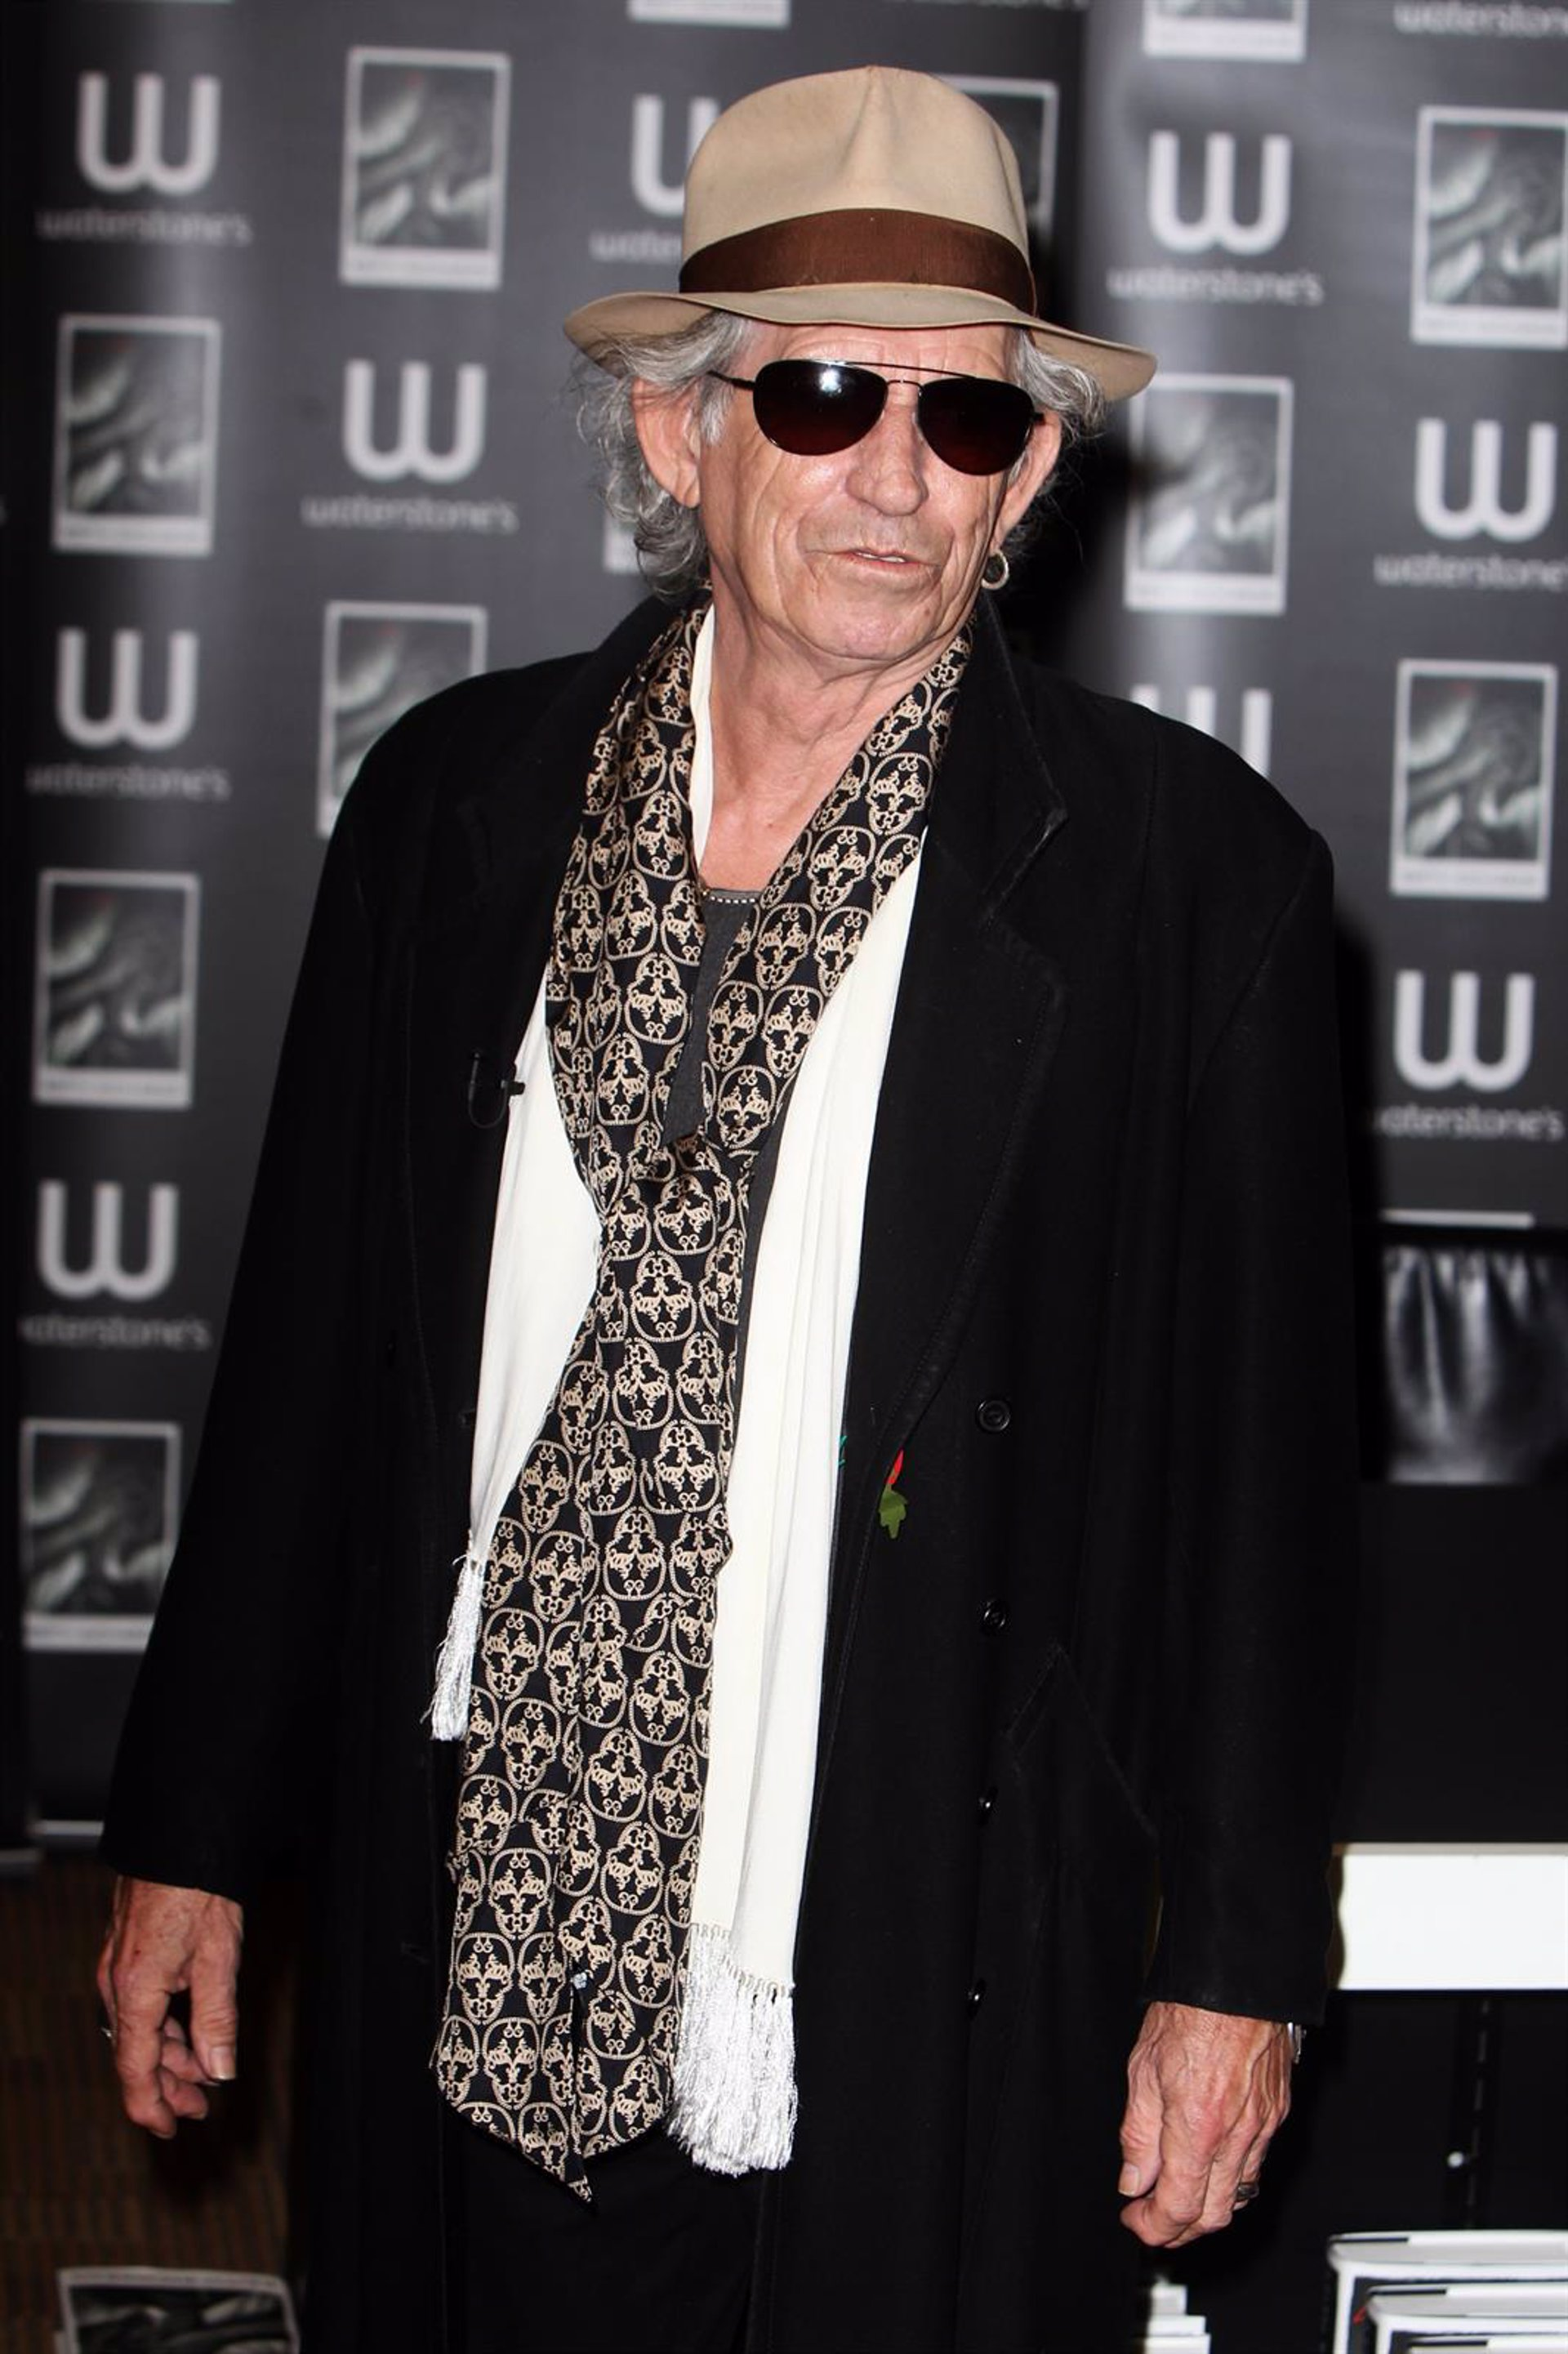 Libro De Keith Richards Keith Richards Publicará Un Libro Para Niños